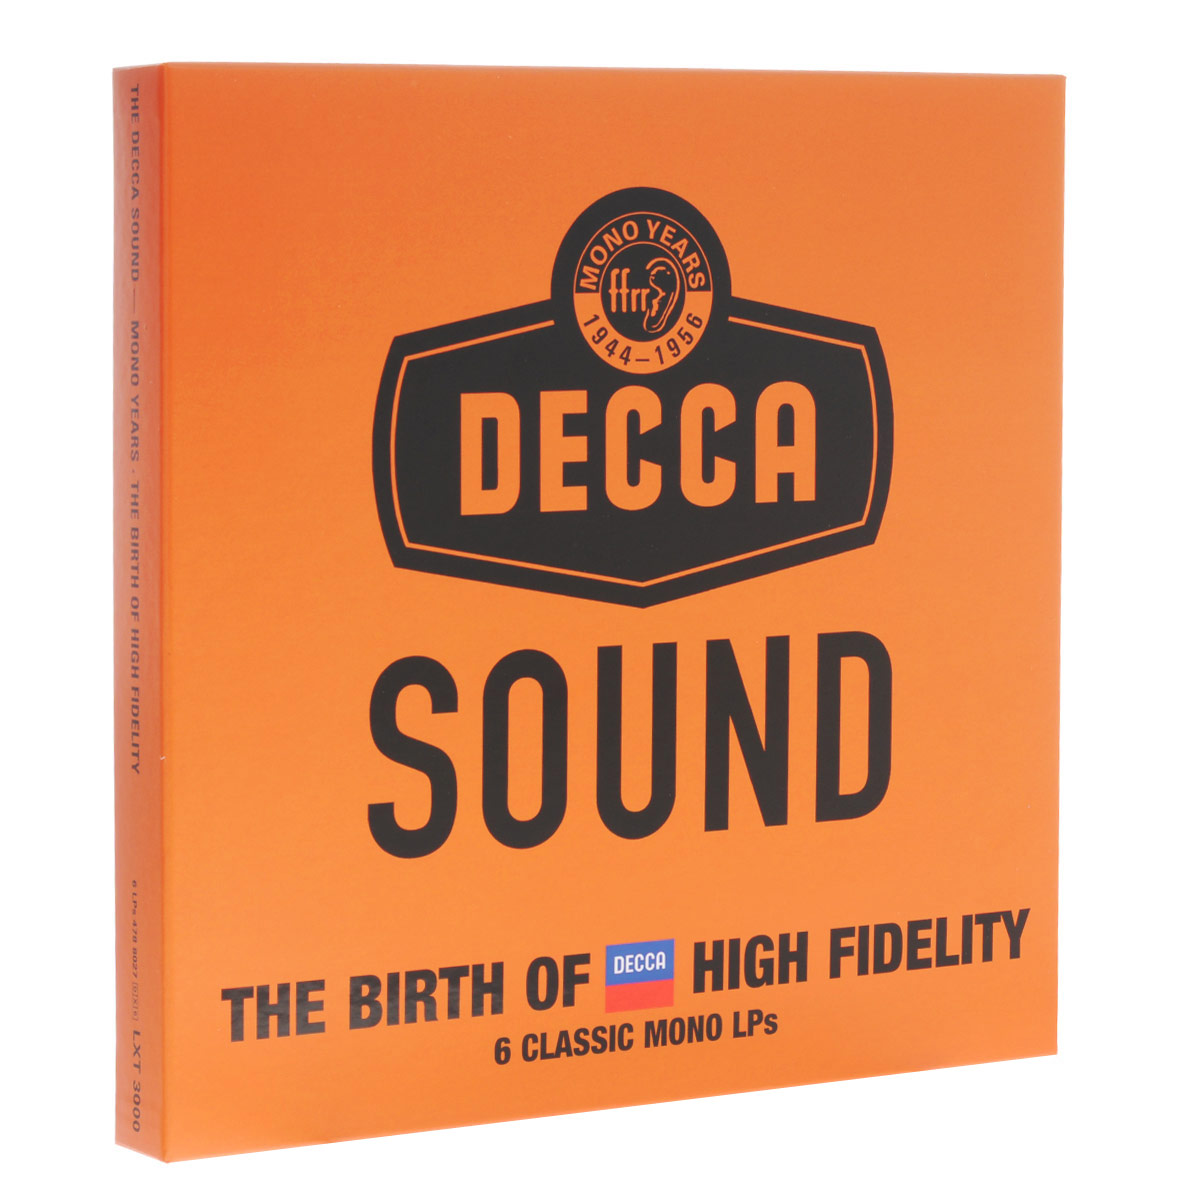 Зара Нельсова,Artur Balsam The Decca Sound - Mono Years. The Birth Of High Fidelity (Limited Edition) (6 LP) the jayhawks the jayhawks sound of lies 2 lp